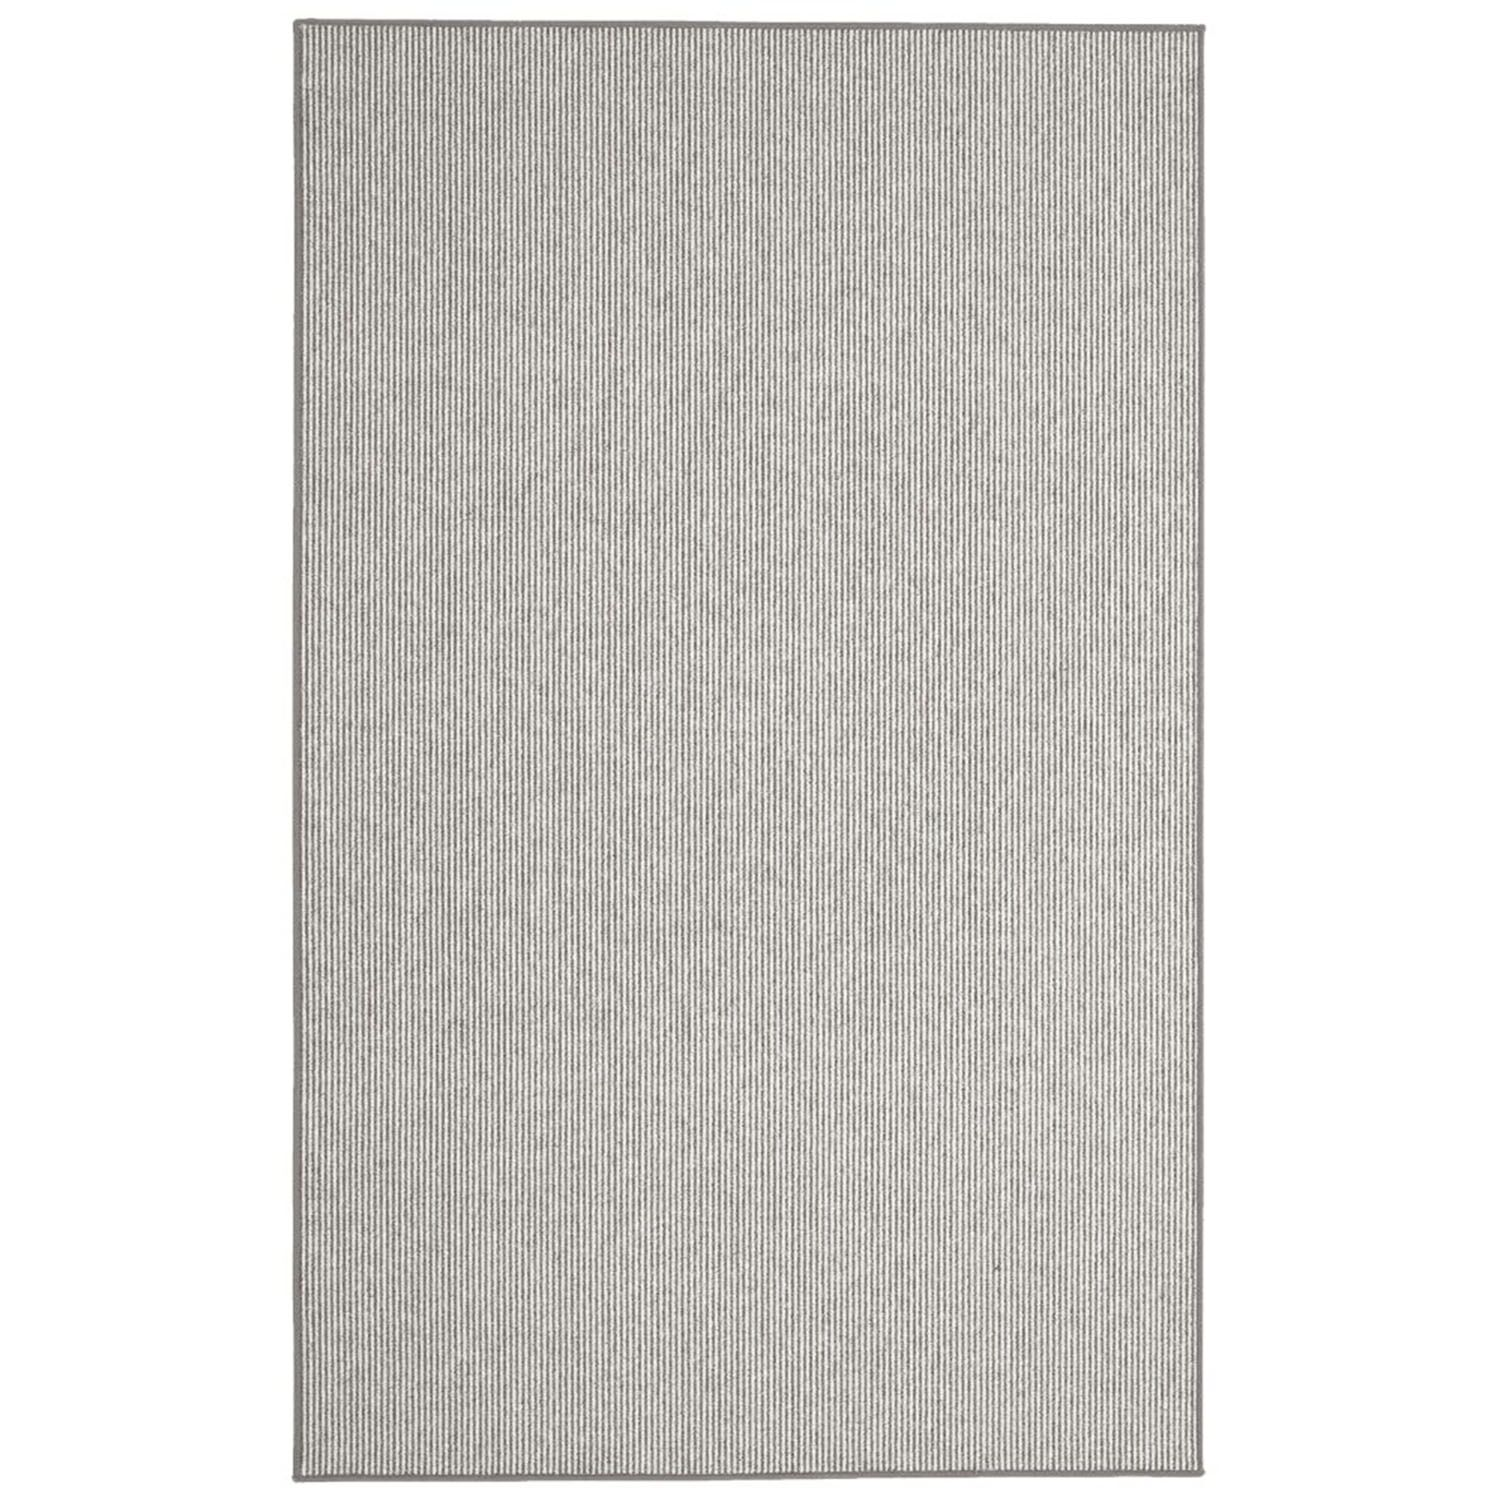 Meredith Charcoal Stripe Area Rug Rug Size: Runner 2'6